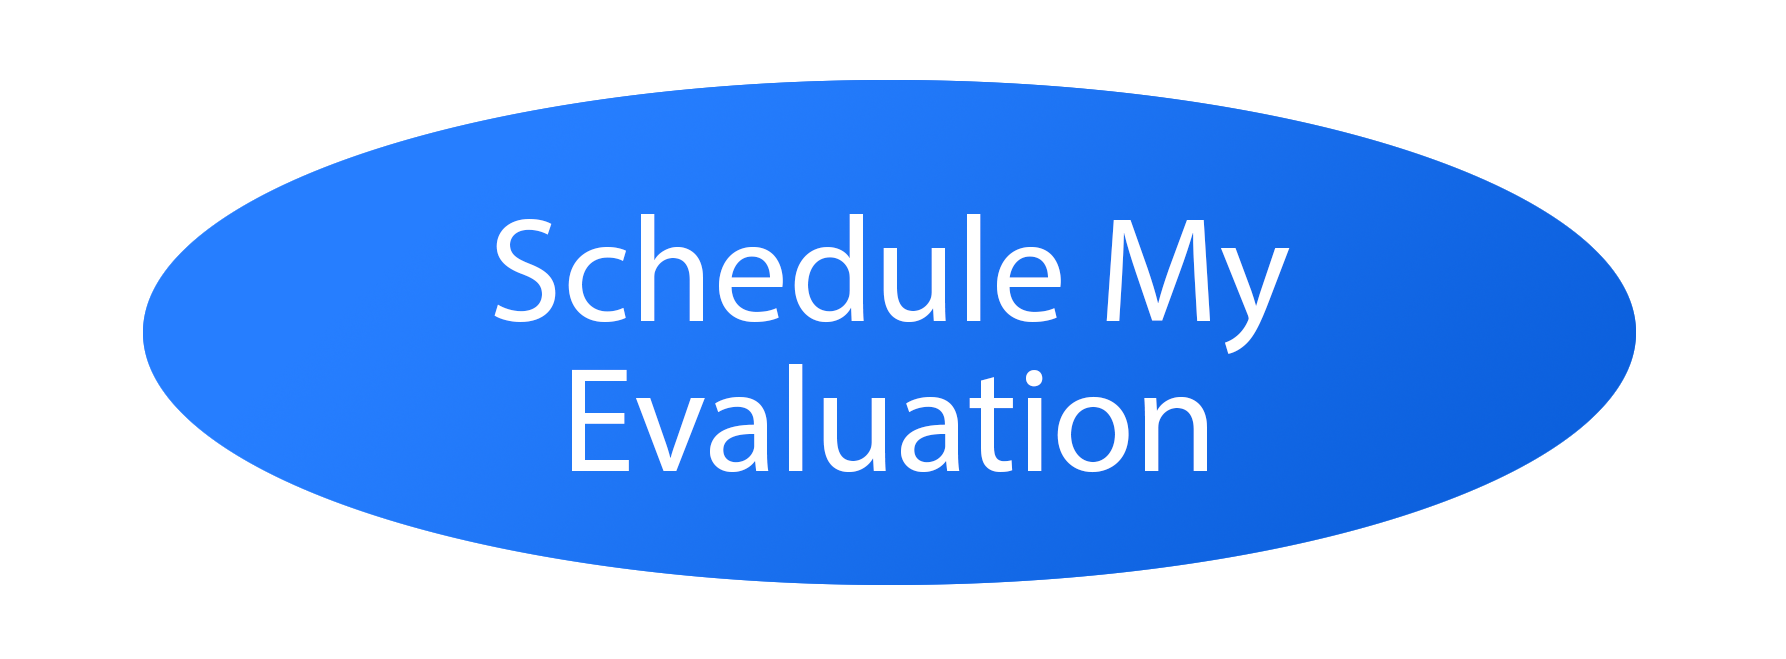 Schedule Evaluation.png